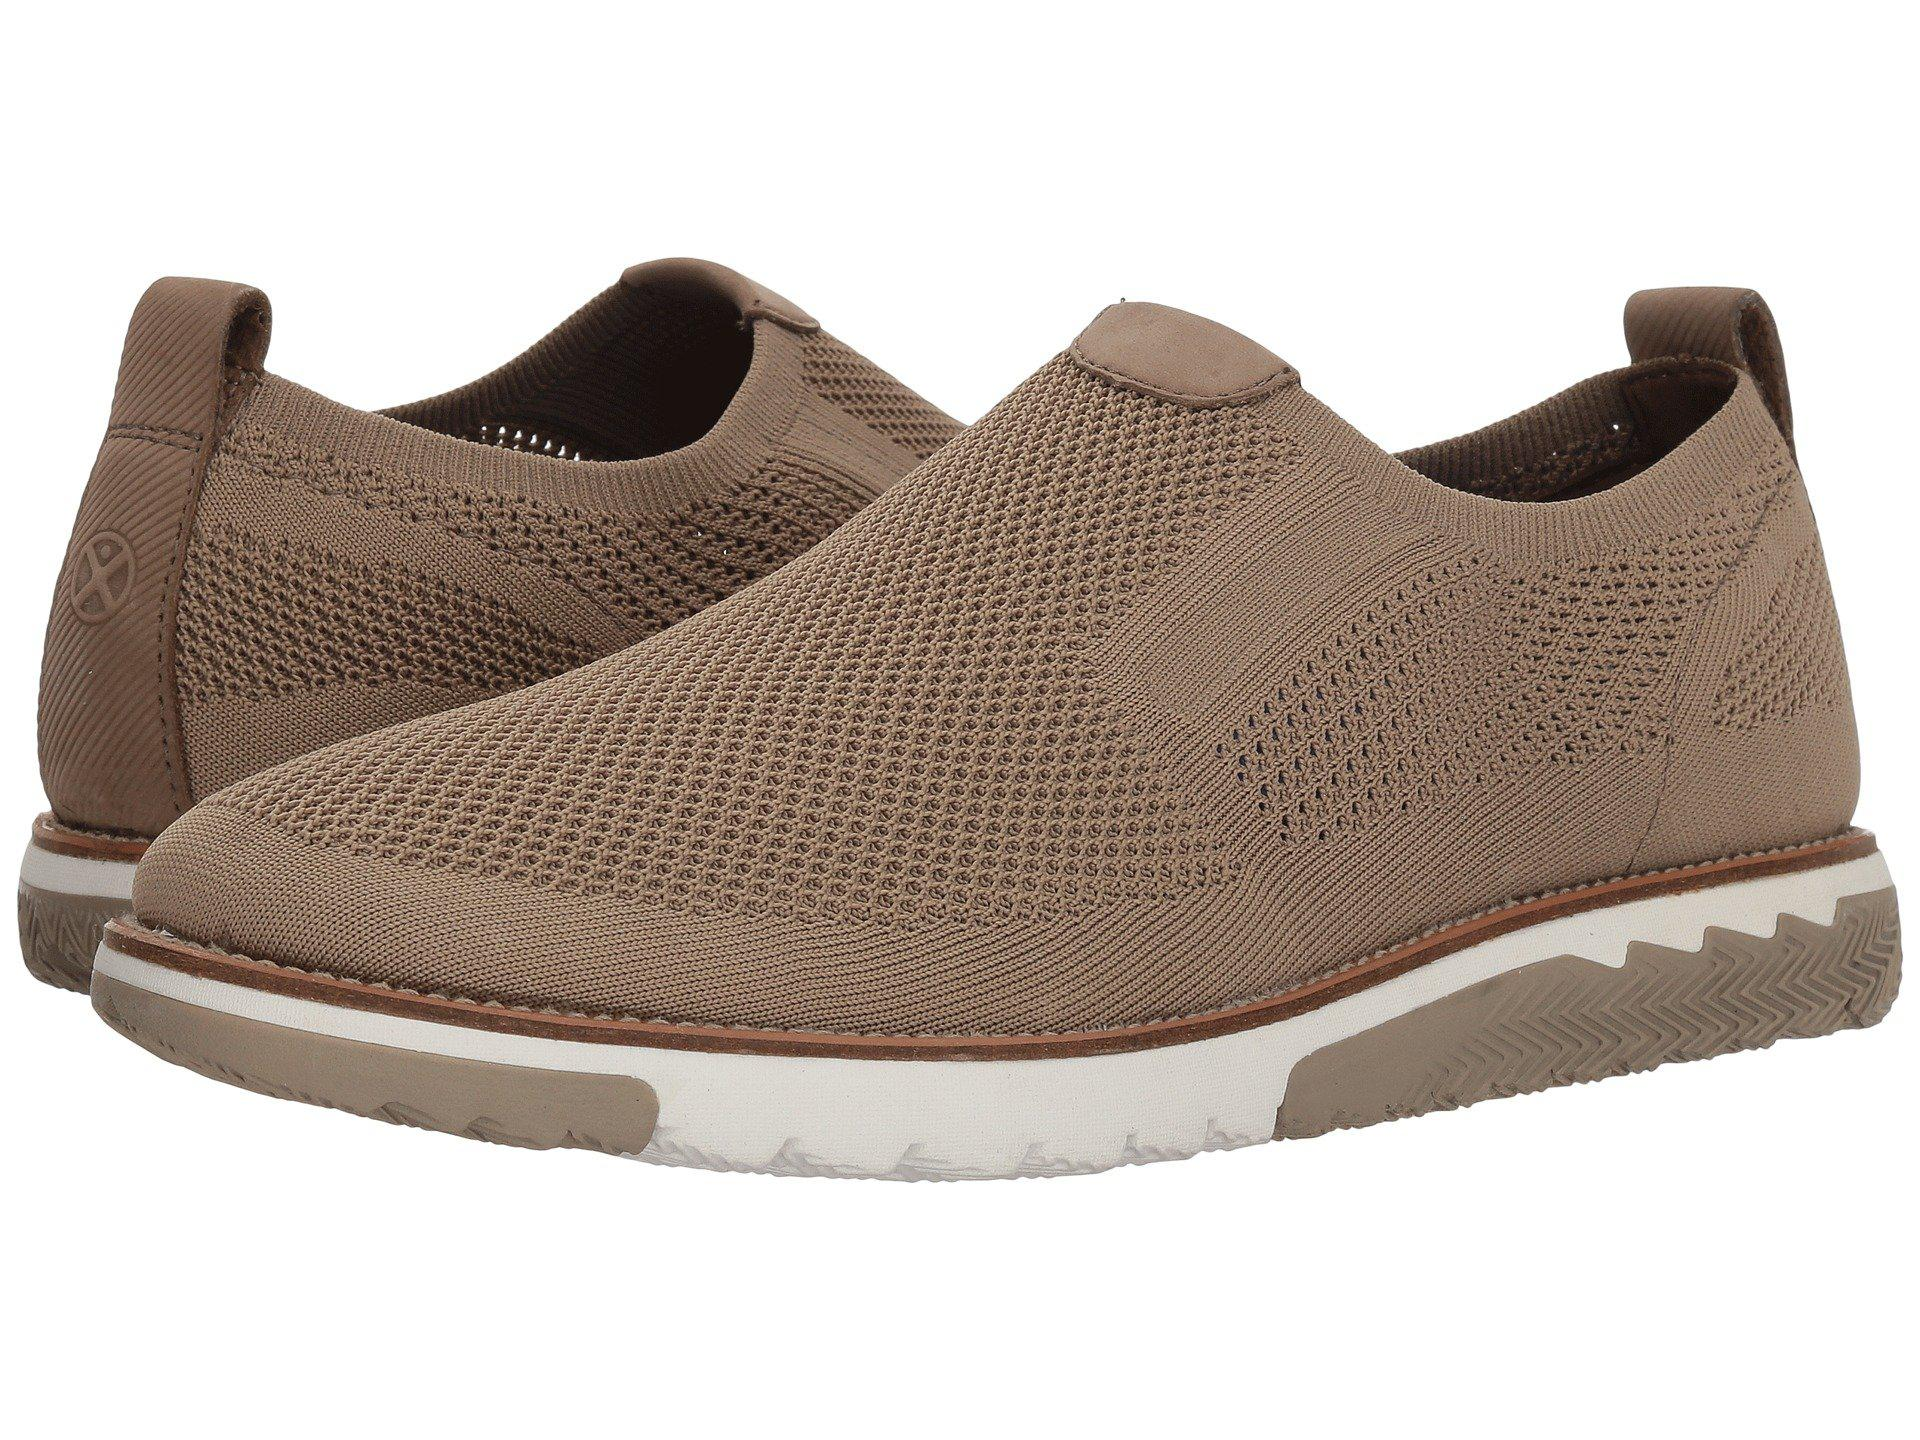 most popular fashion styles lowest discount Hush Puppies Leather Expert Mt Slip-on (taupe Knit/nubuck) Men's ...